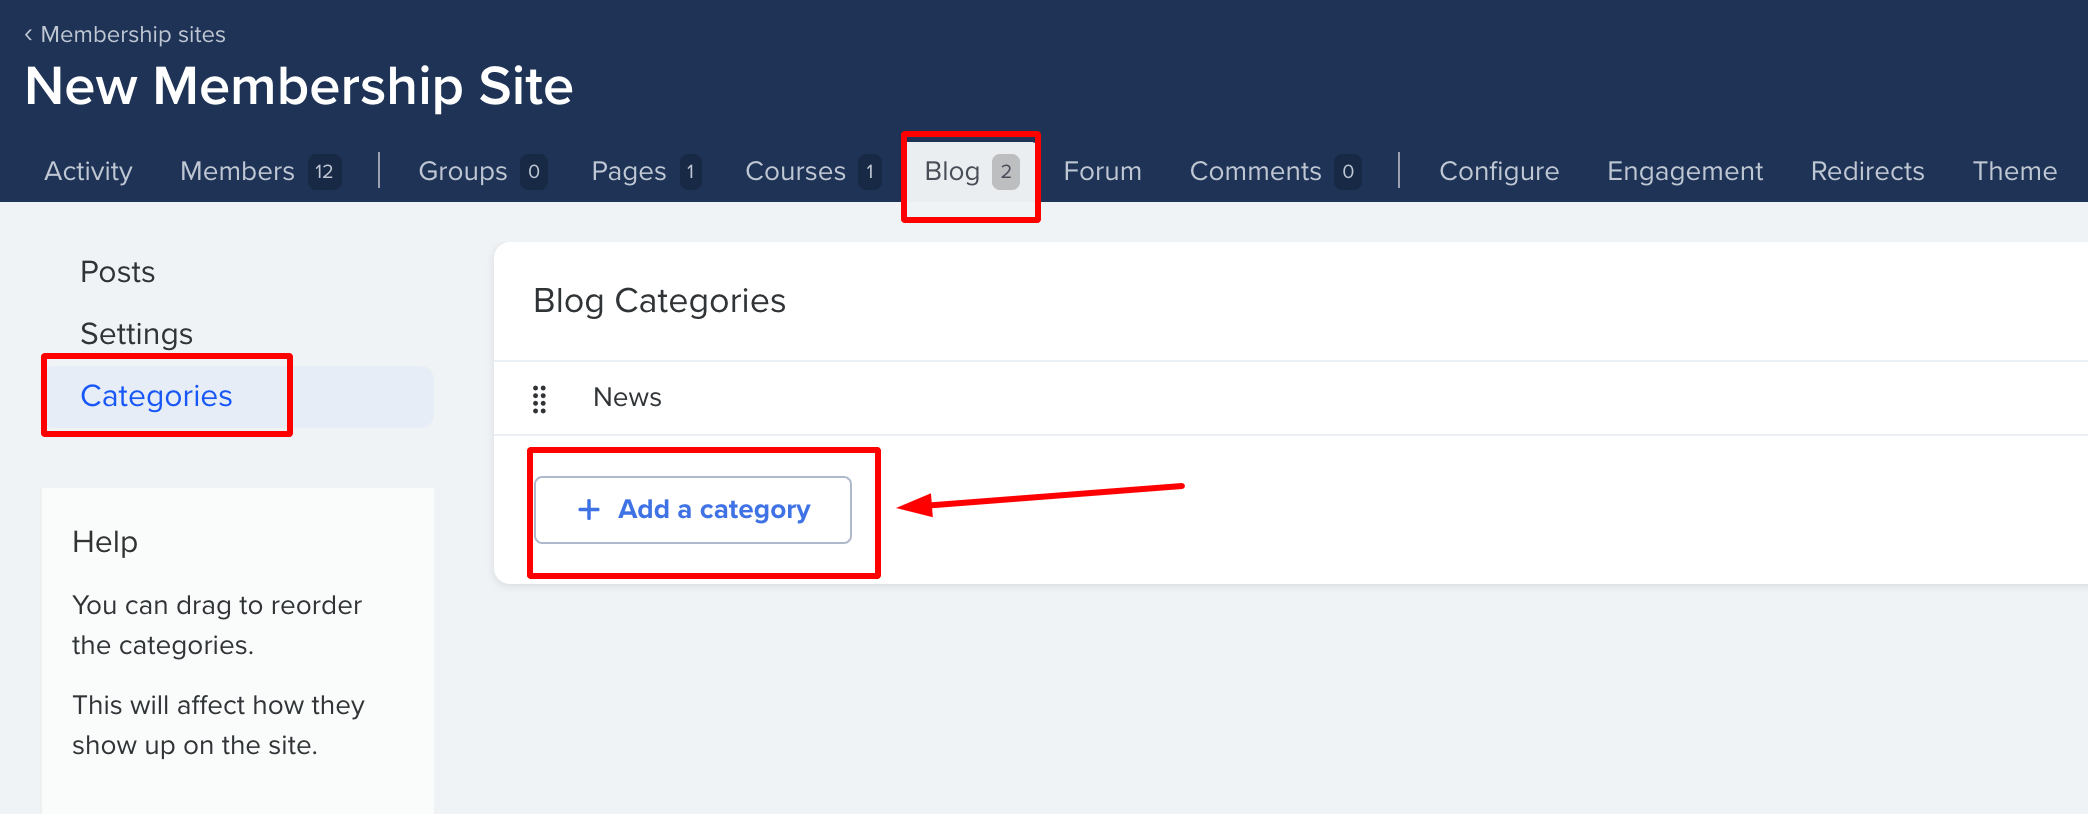 Add_category_button_for_blog